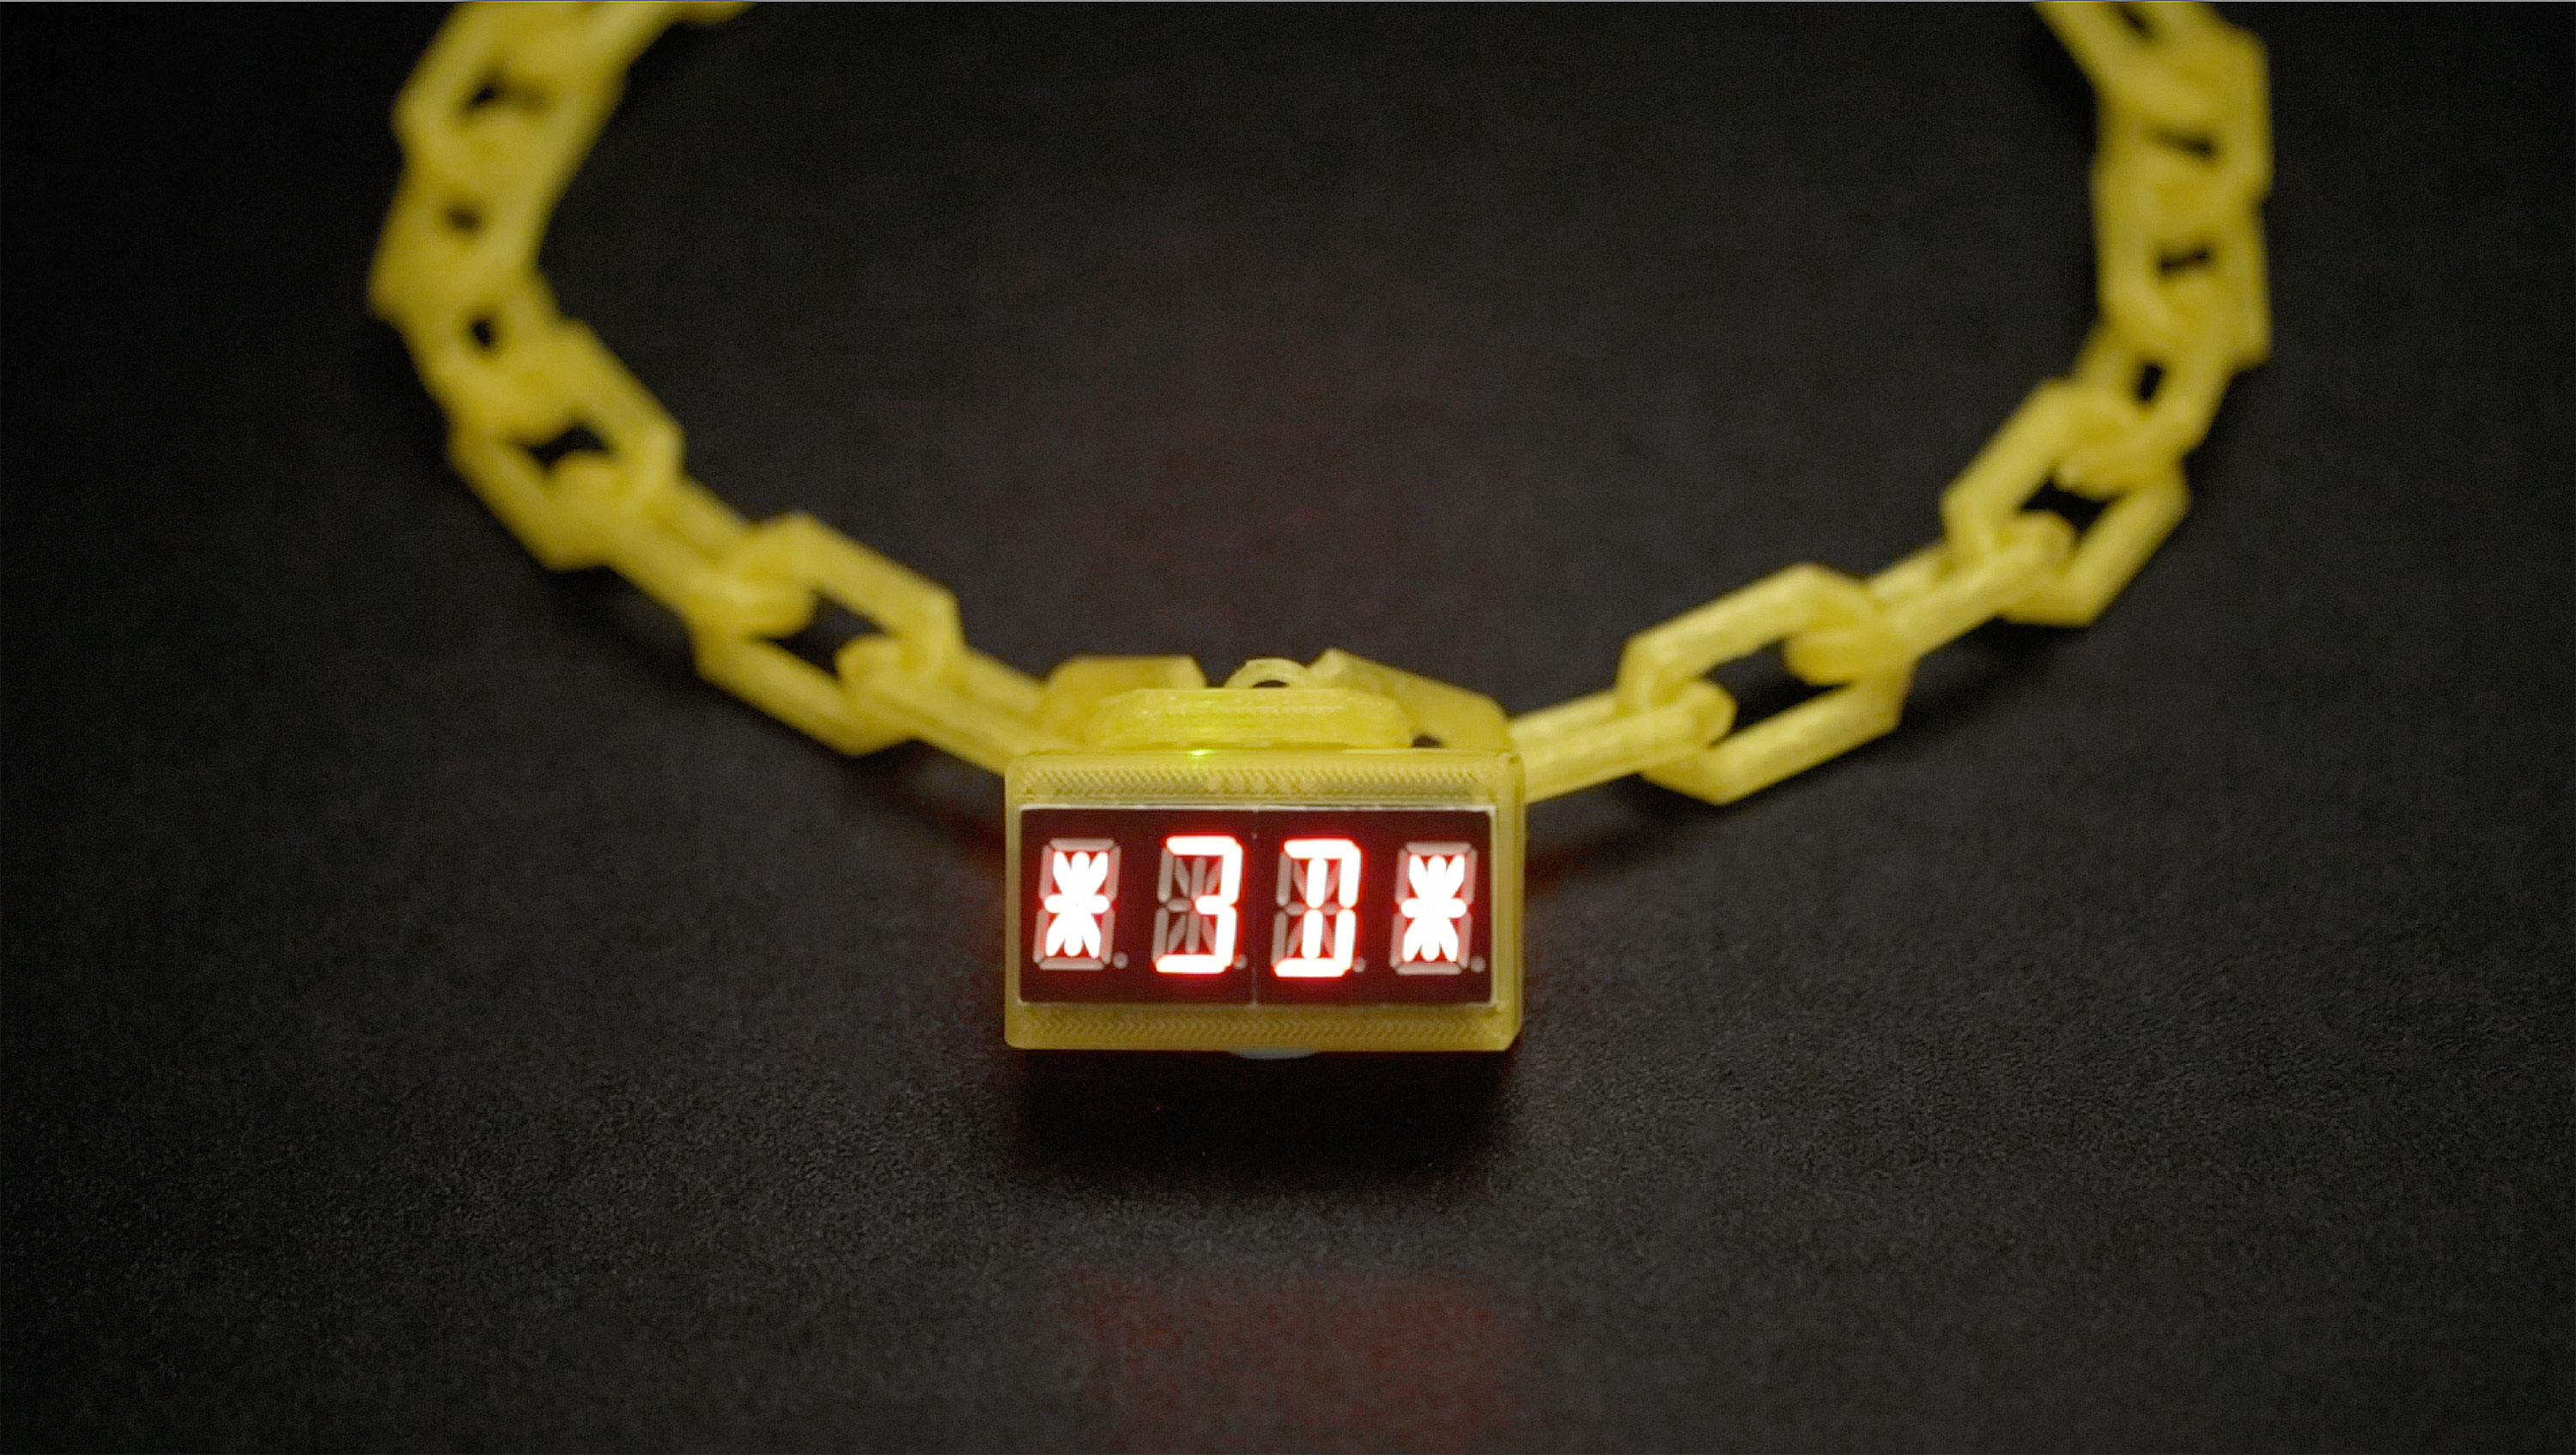 leds_chain-hero.jpg